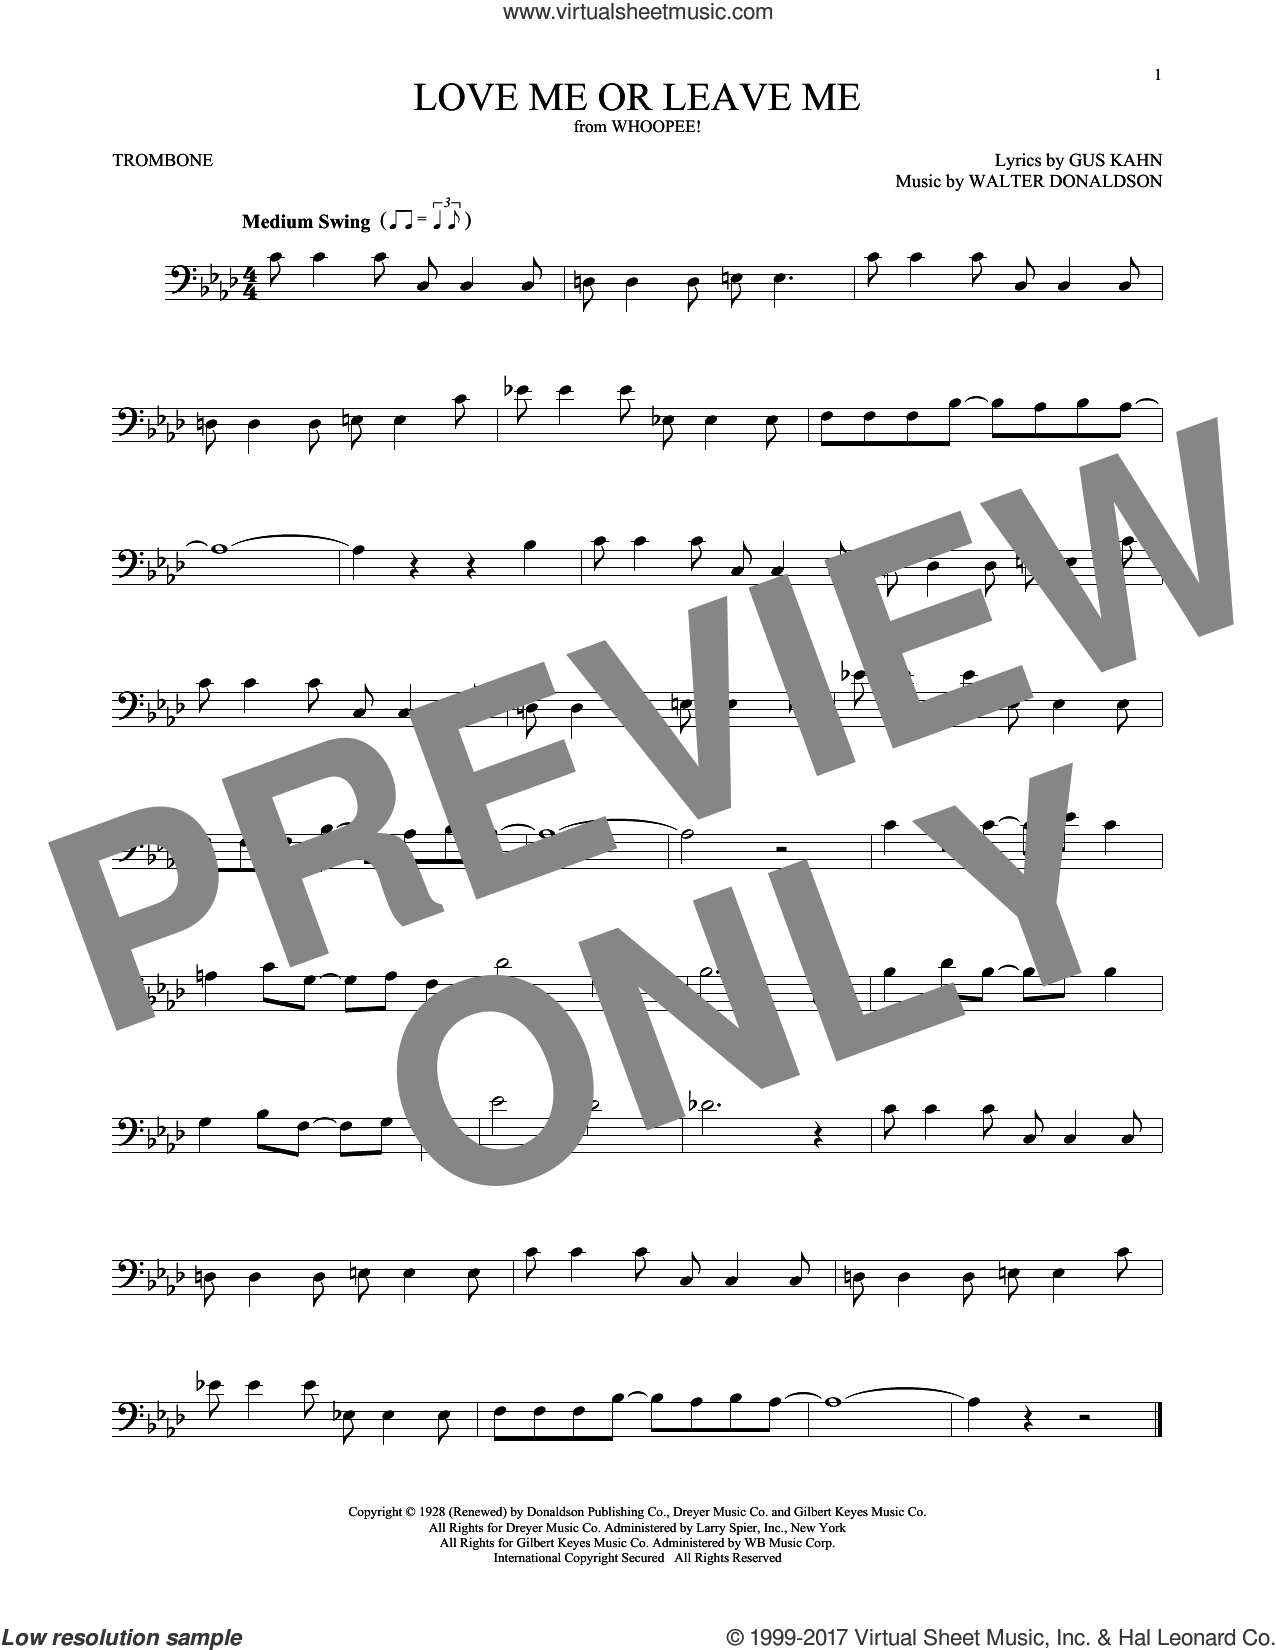 Love Me Or Leave Me sheet music for trombone solo by Gus Kahn, Dave Pell, Donaldson and Kahn and Walter Donaldson, intermediate skill level